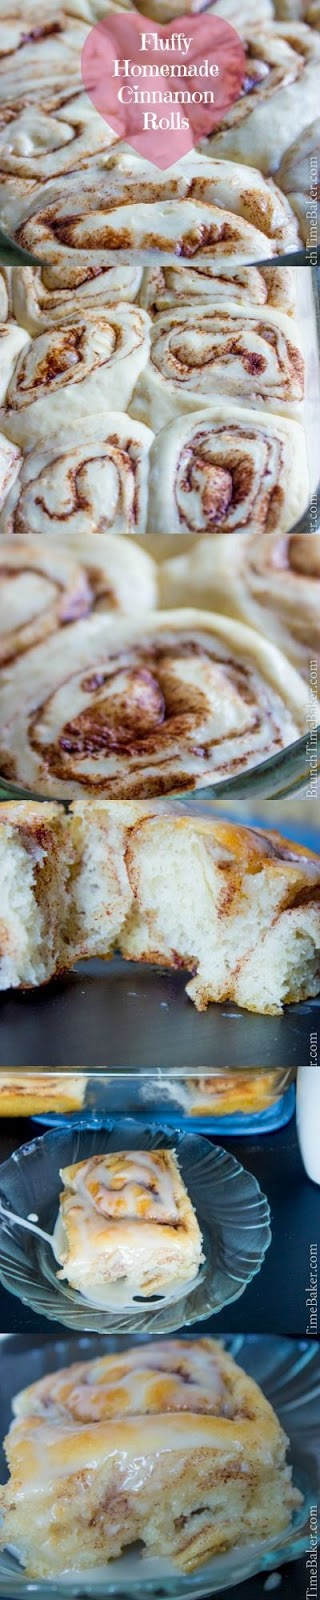 Fluffy, soft, tender, sweet, Cinnamony, simply mouth watering Cinnamon rolls. It was really great to wake up this morning to fresh cinnamon rolls. I threw these babies in the oven at 7 am and by